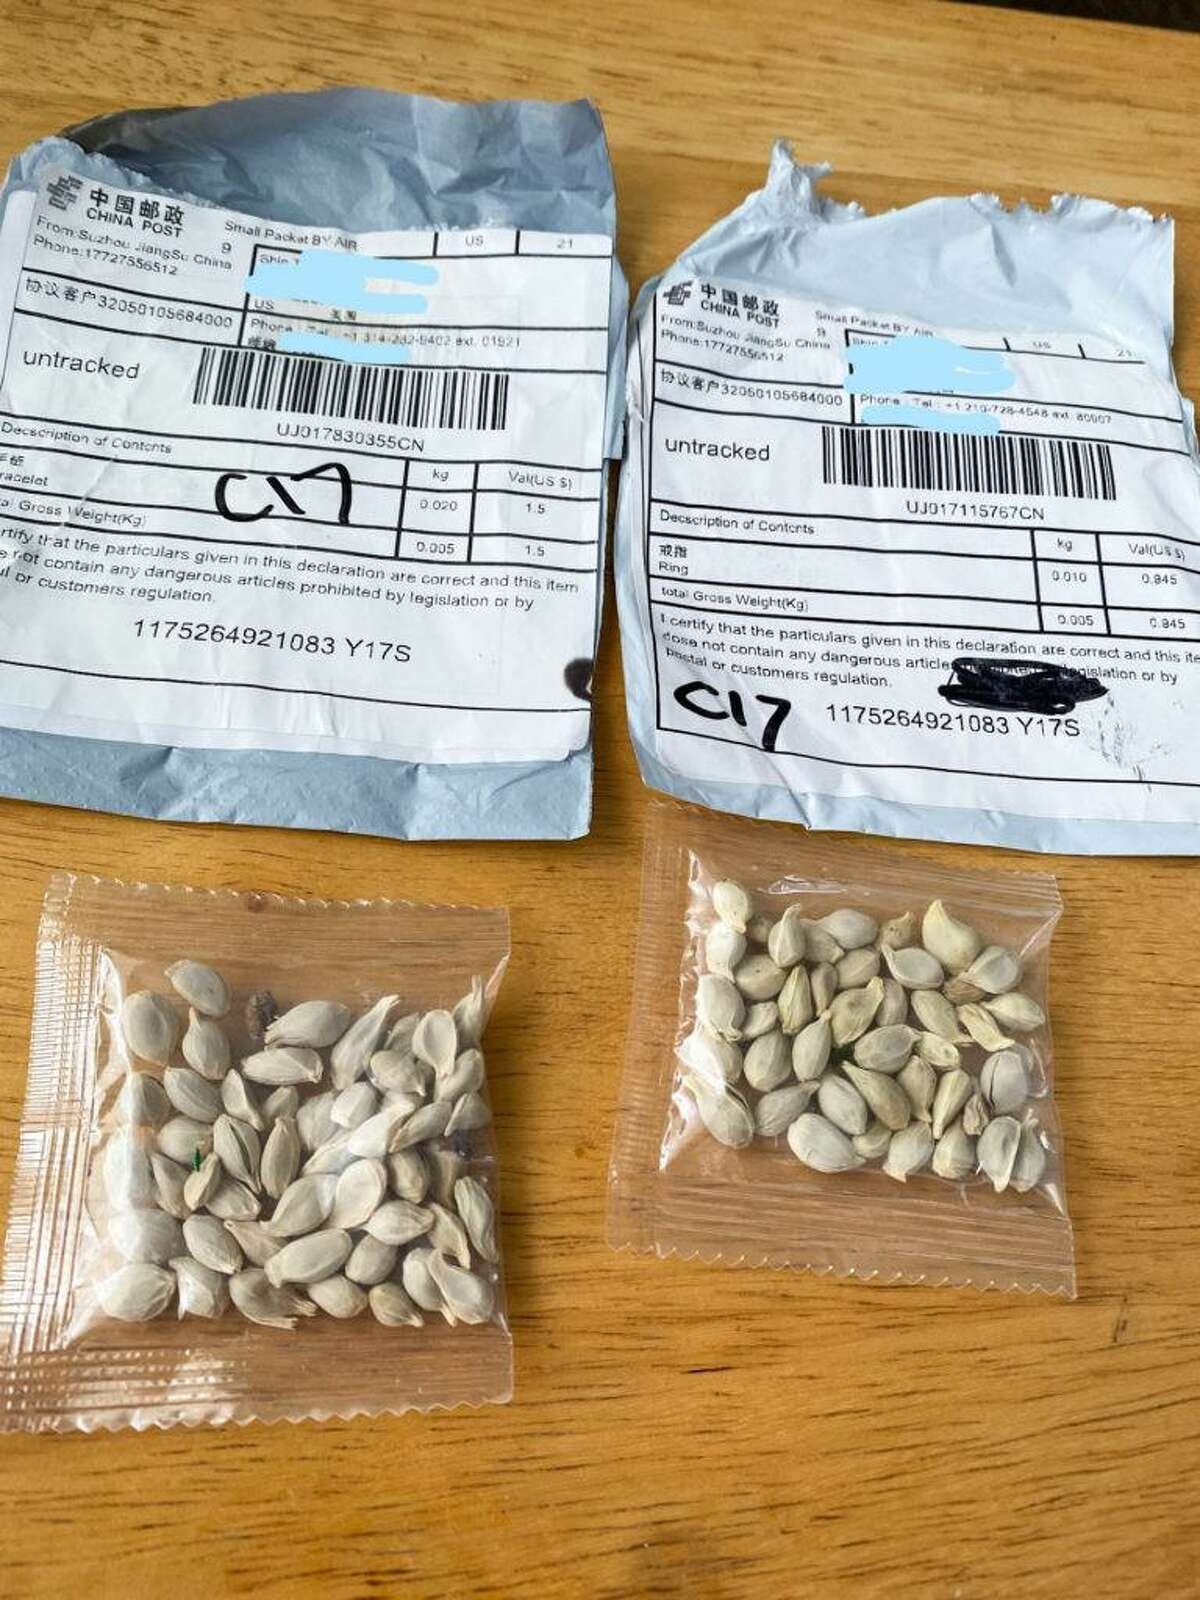 These packages sent from China contain unidentified packets of seeds with Chinese text printed on them. The small packages often arrive in the mail with labels indicating the contents are jewelry or other small items, but when the recipient opens the package, they find packets of seeds instead. The danger is that the unknown seeds could pose a threat to the agriculture industry.